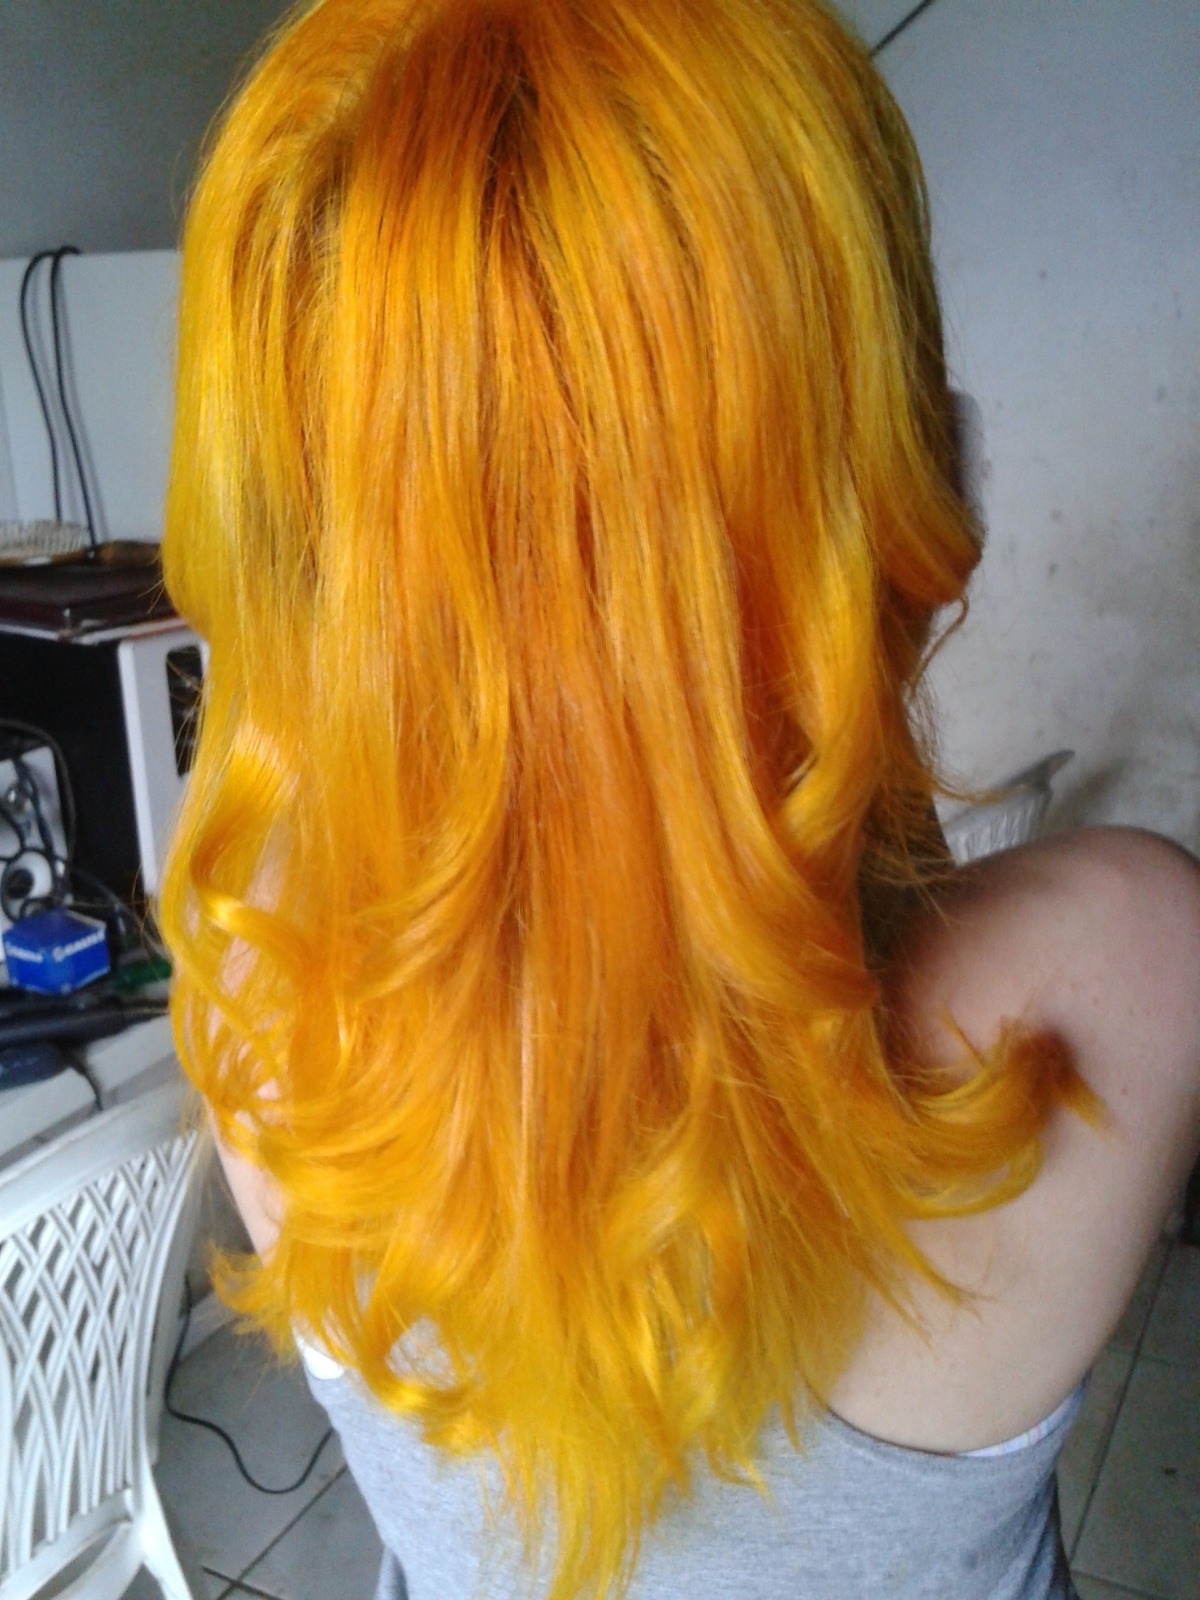 fuckyeah-dyedhair:  work gave me this hair!!! despite being gorgeous in this color, I lived with my hands and neck stained by ink. http://amyrismo.tumblr.com